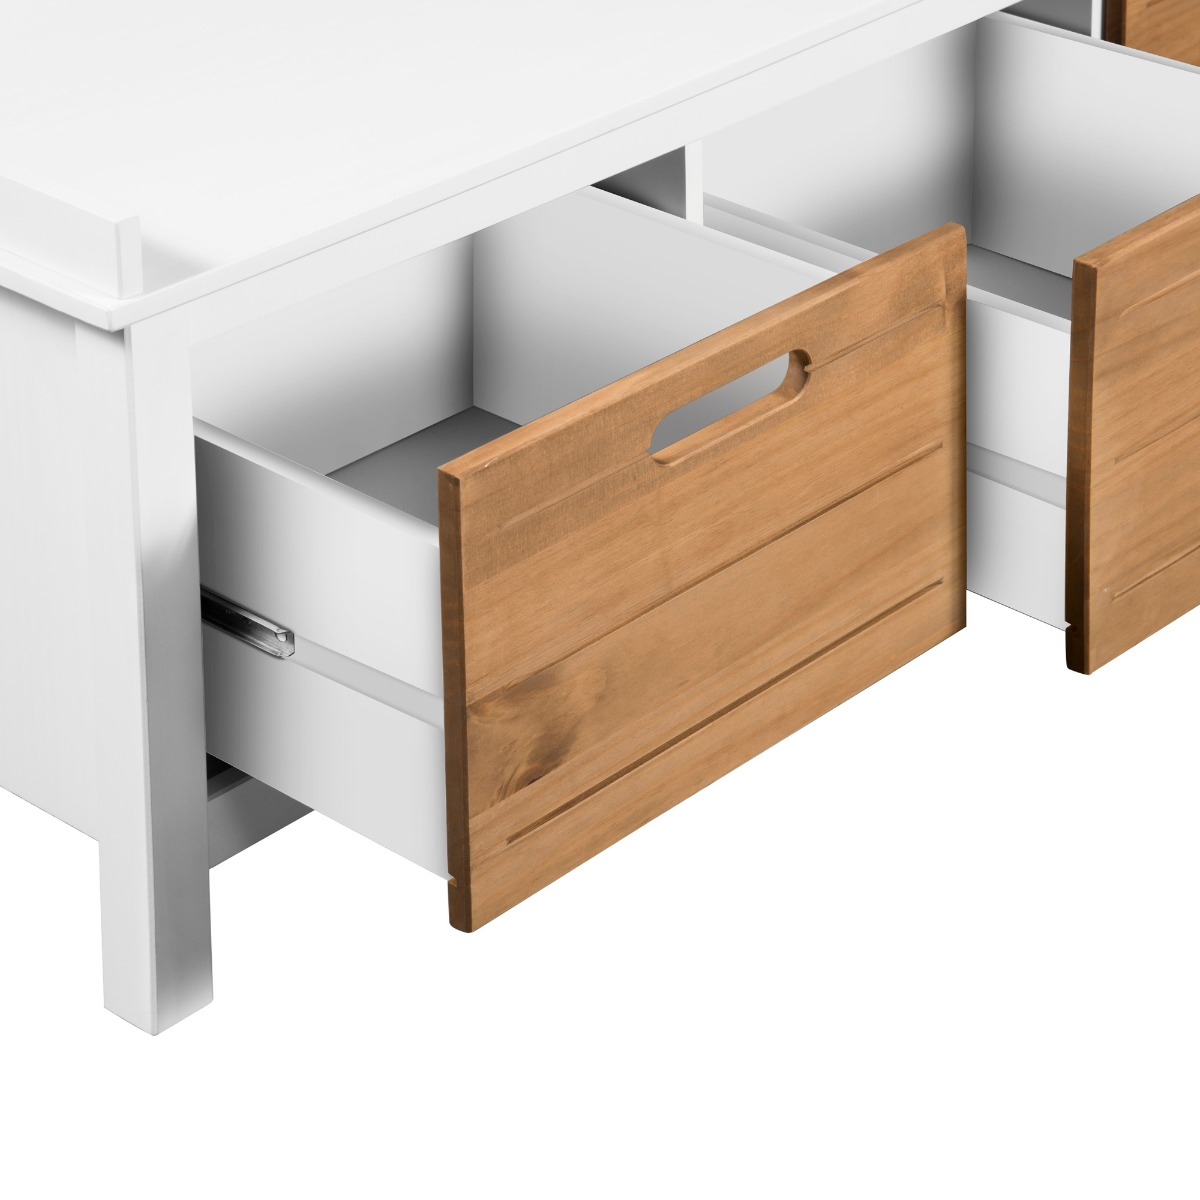 Irving Storage Bench Entryway 1.0